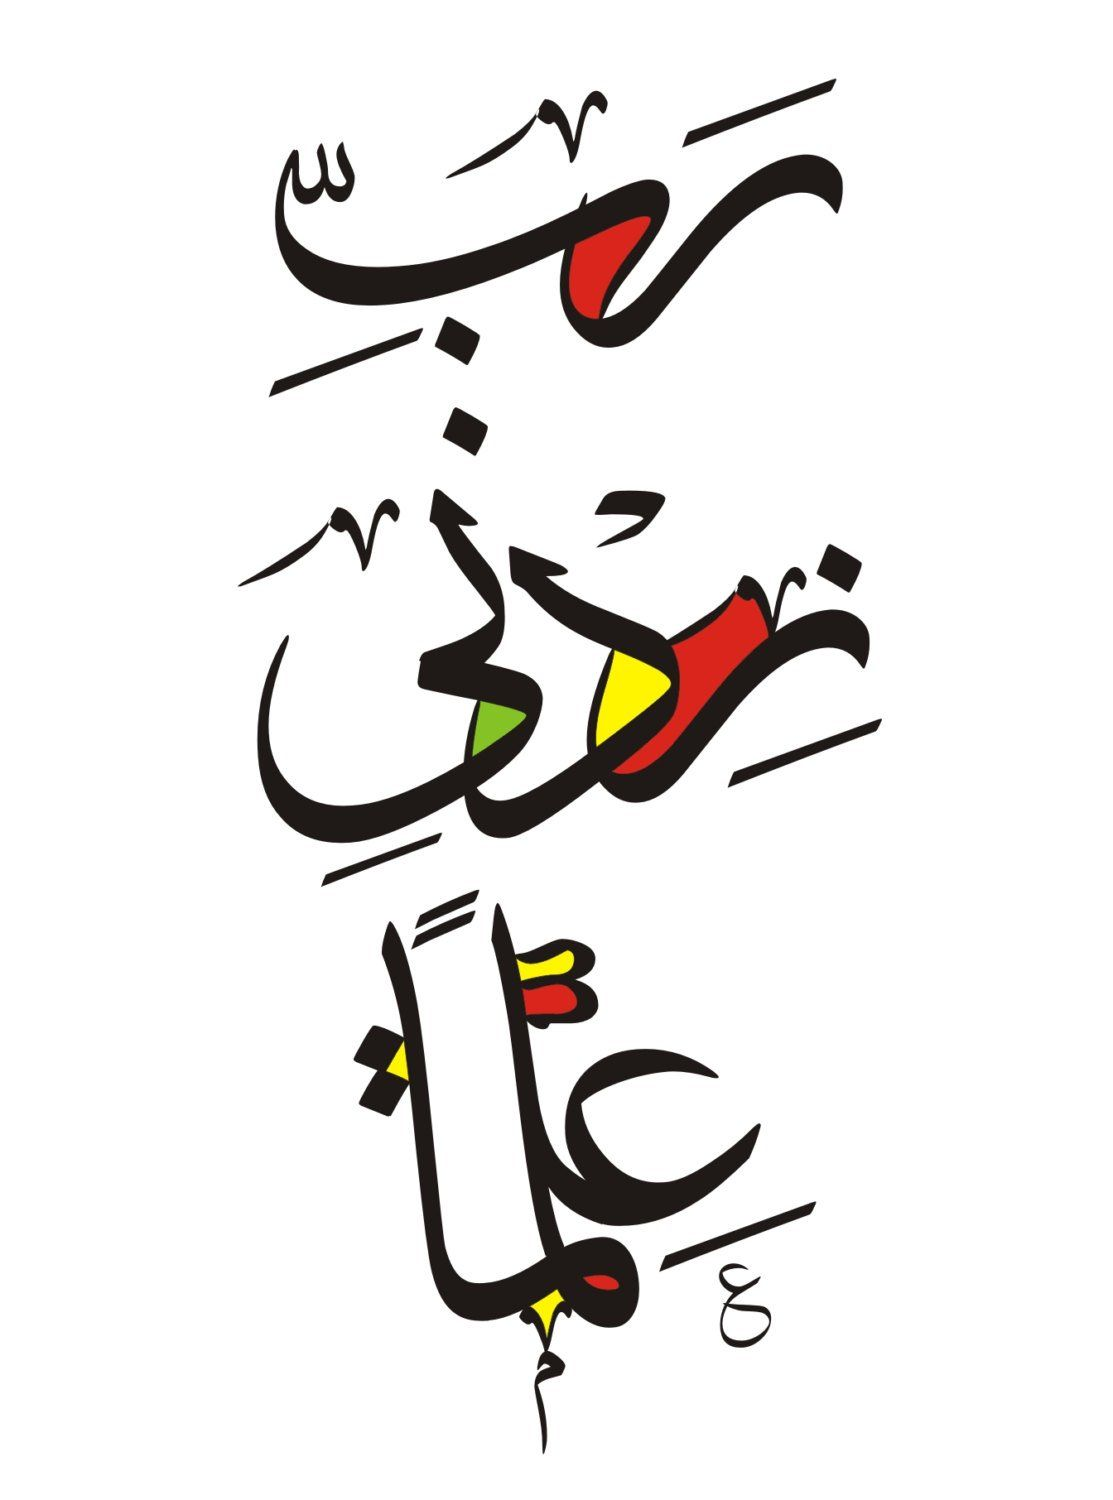 Arabic calligraphy | artist in 2019 | Arabic calligraphy art